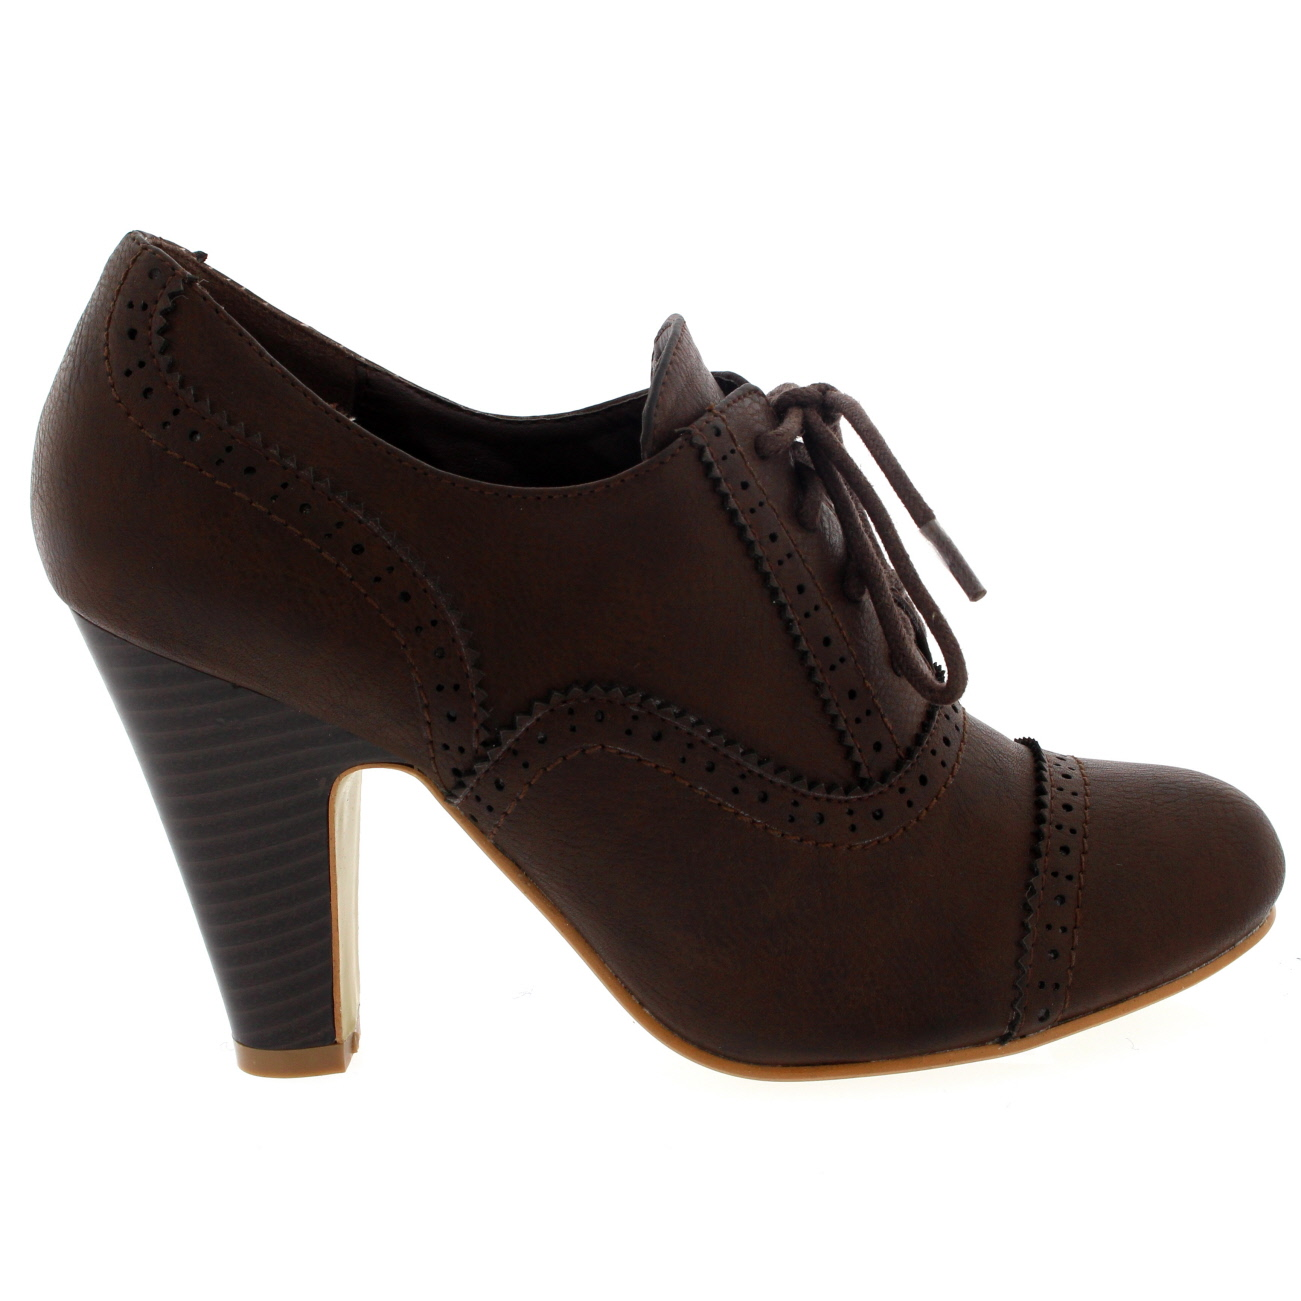 6ed2da659c1 Details about Ladies Mary Jane Brogue Lace Up Ankle Boot Cuban Heel Work  Office Shoe All Sizes